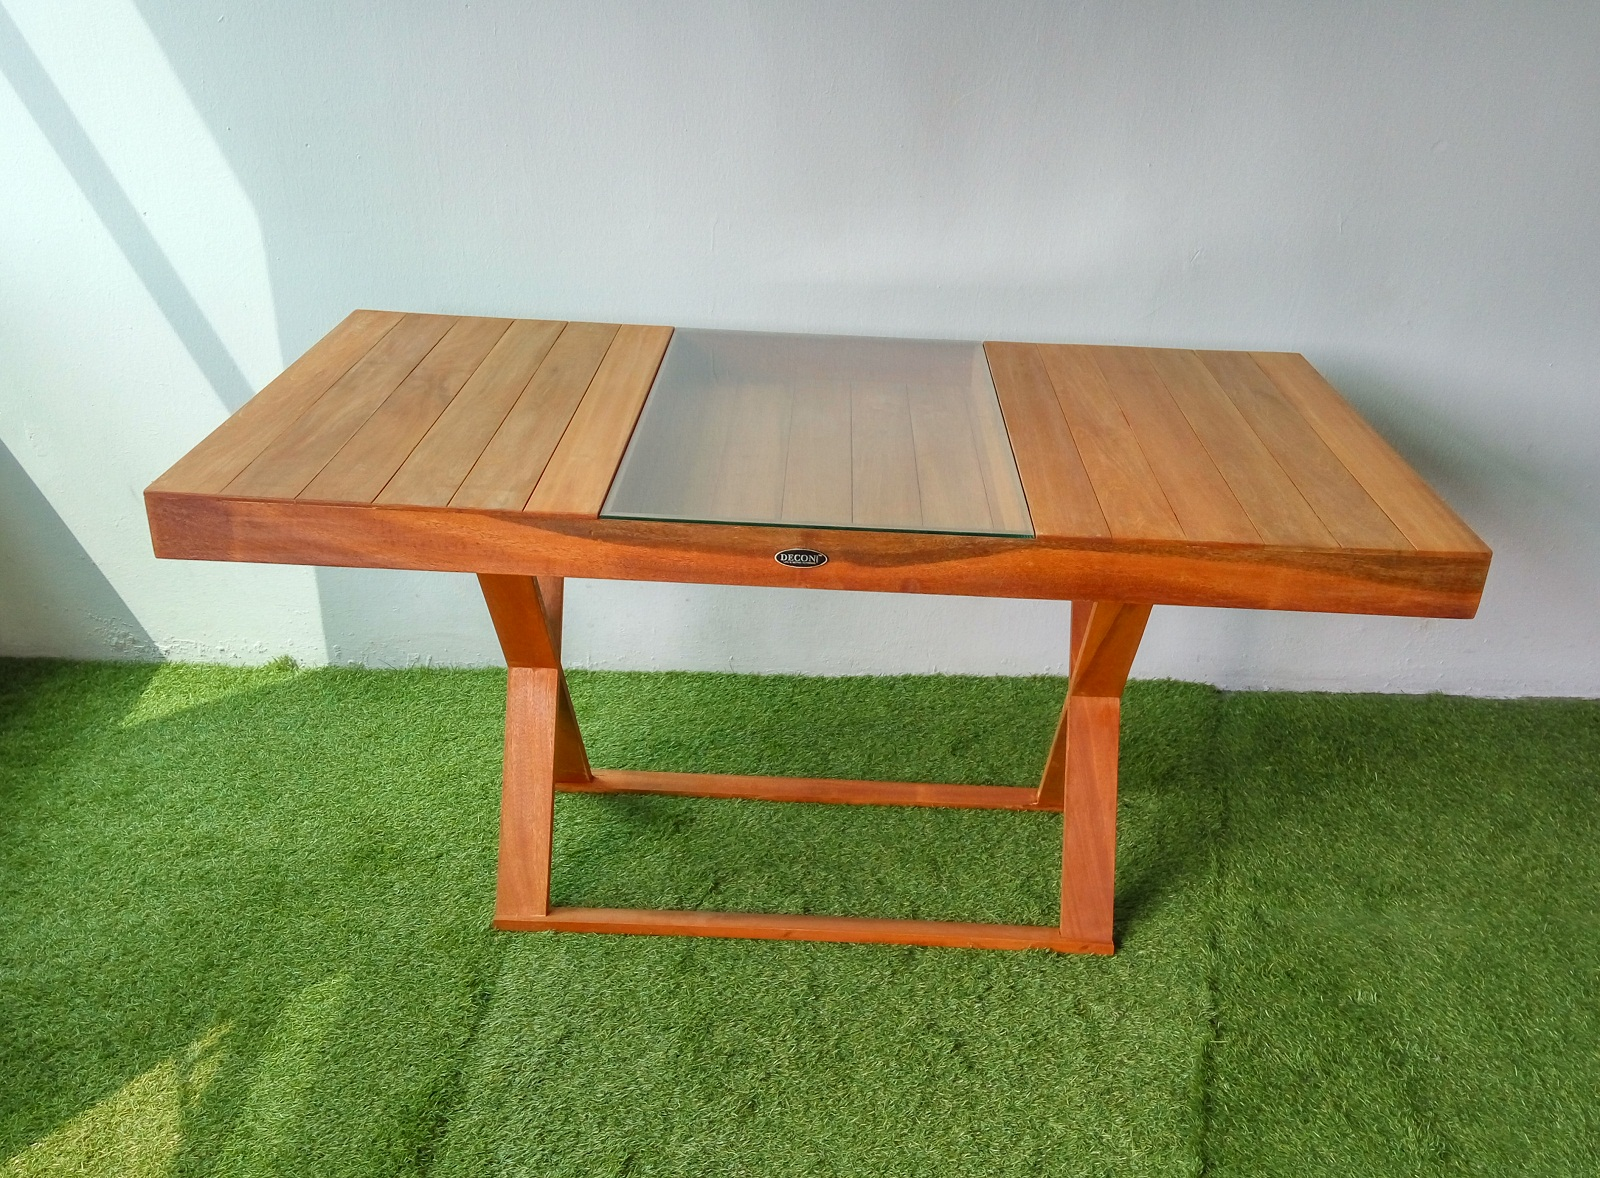 Wood Cafe Table Balau , Balau Wooden Furniture, Cafe Table ...